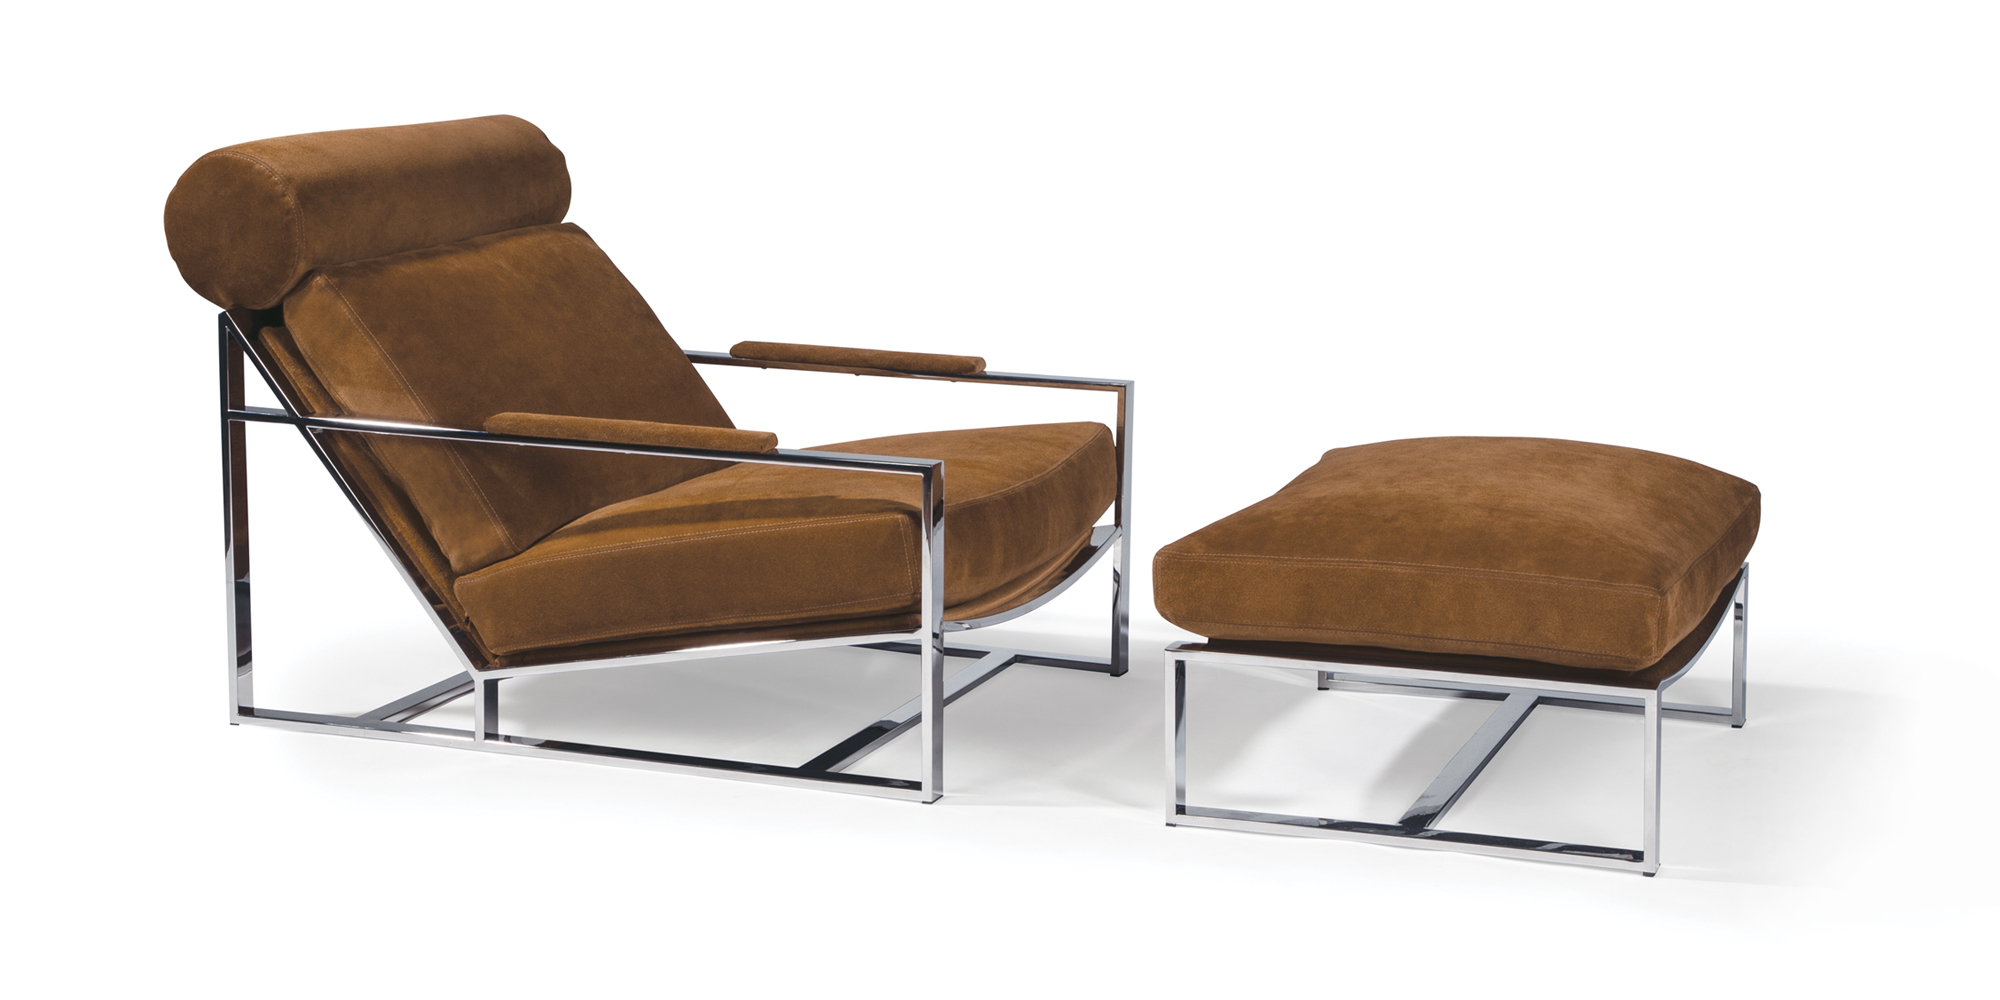 Cruisin' Lounge Chair and Ottoman (Polished Stainless)